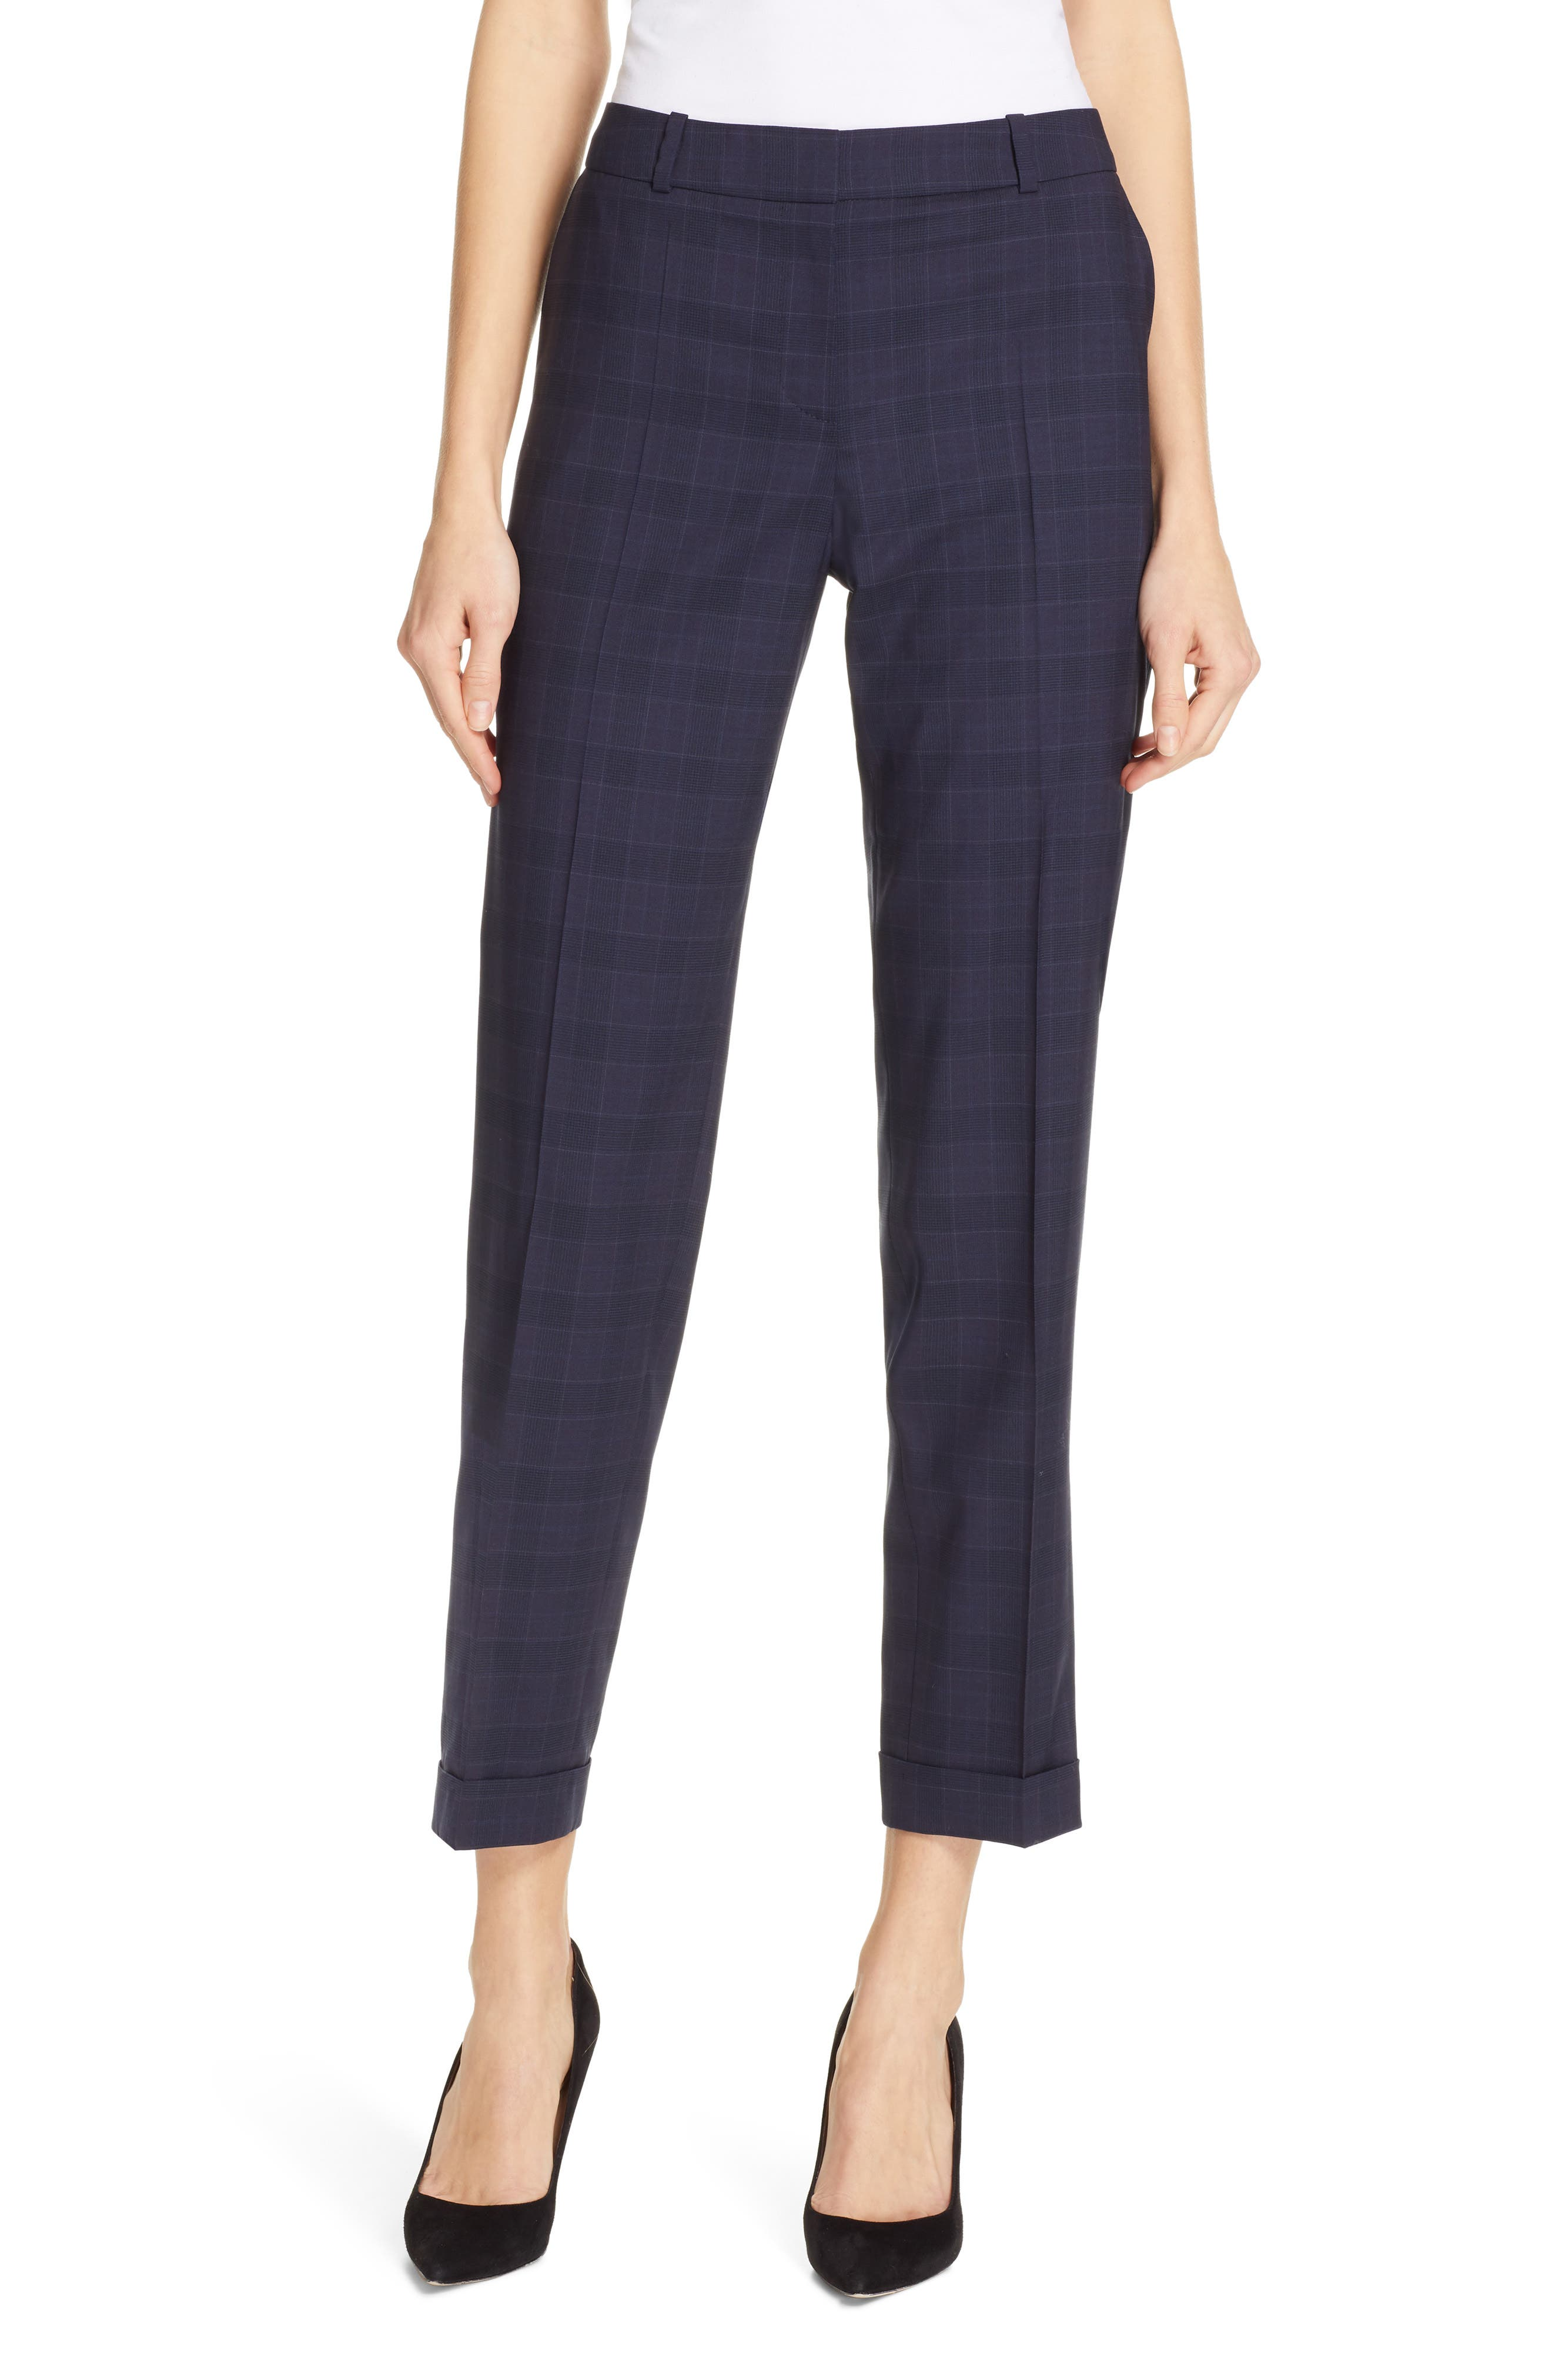 Tocanes Modern Check Wool Ankle Trousers,                             Main thumbnail 1, color,                             DARK NAVY FANTASY